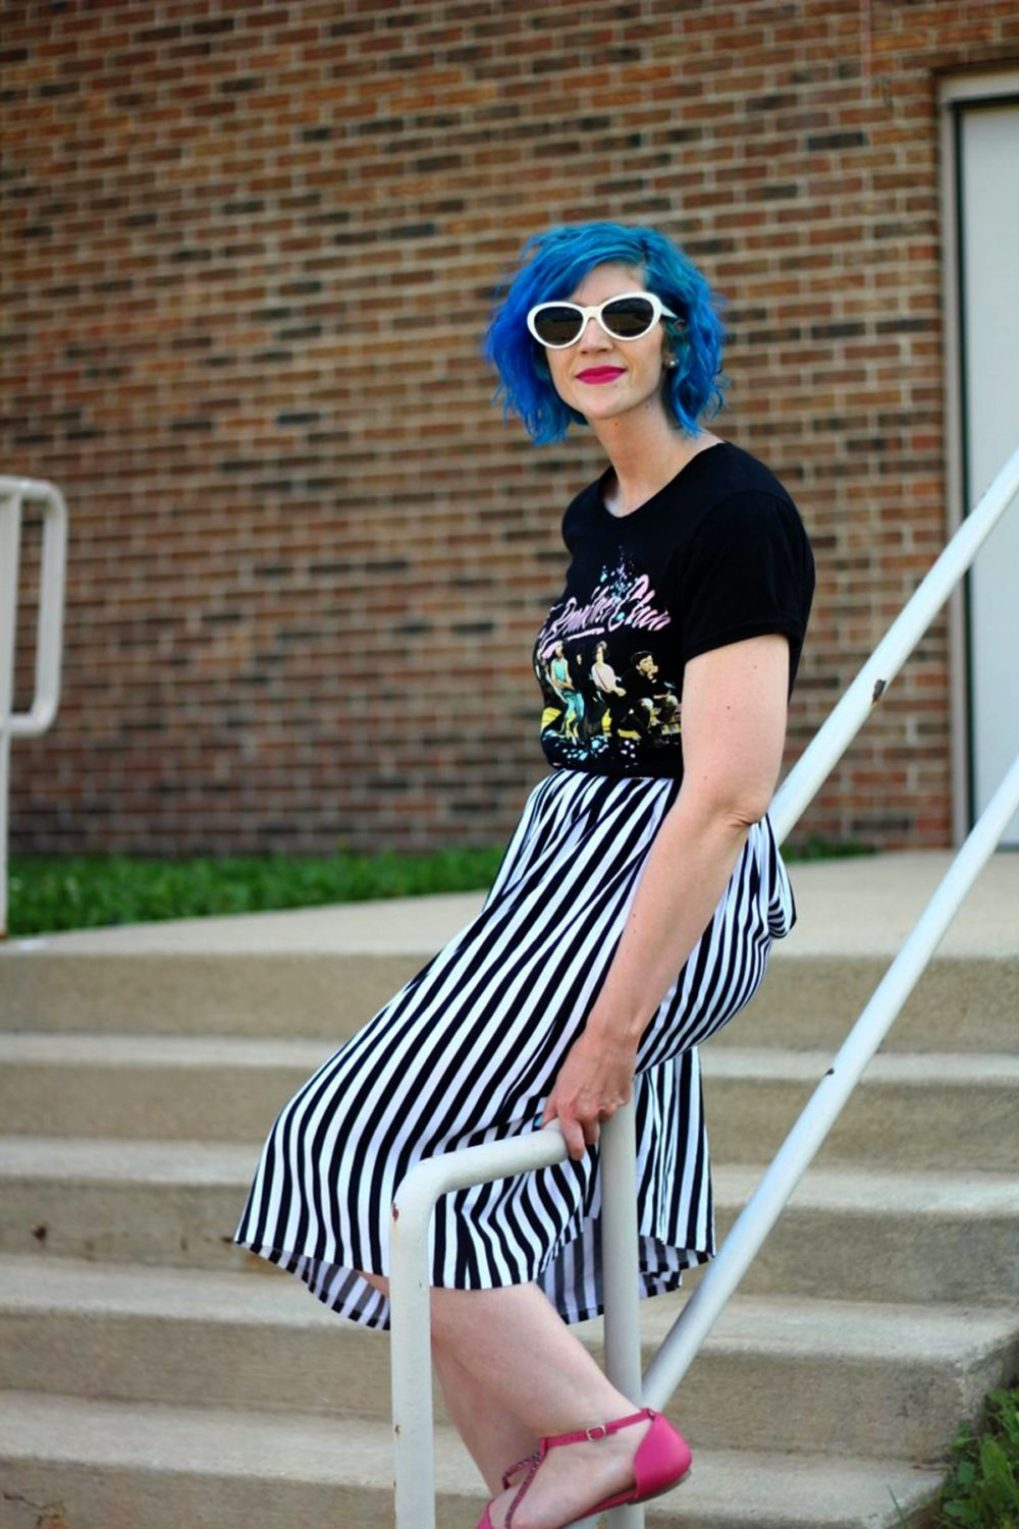 Outfit: Breakfast club graphic tee, black and white striped skirt, blue hair, pink lipstick, pink flats, white Giant Vintage sunglasses